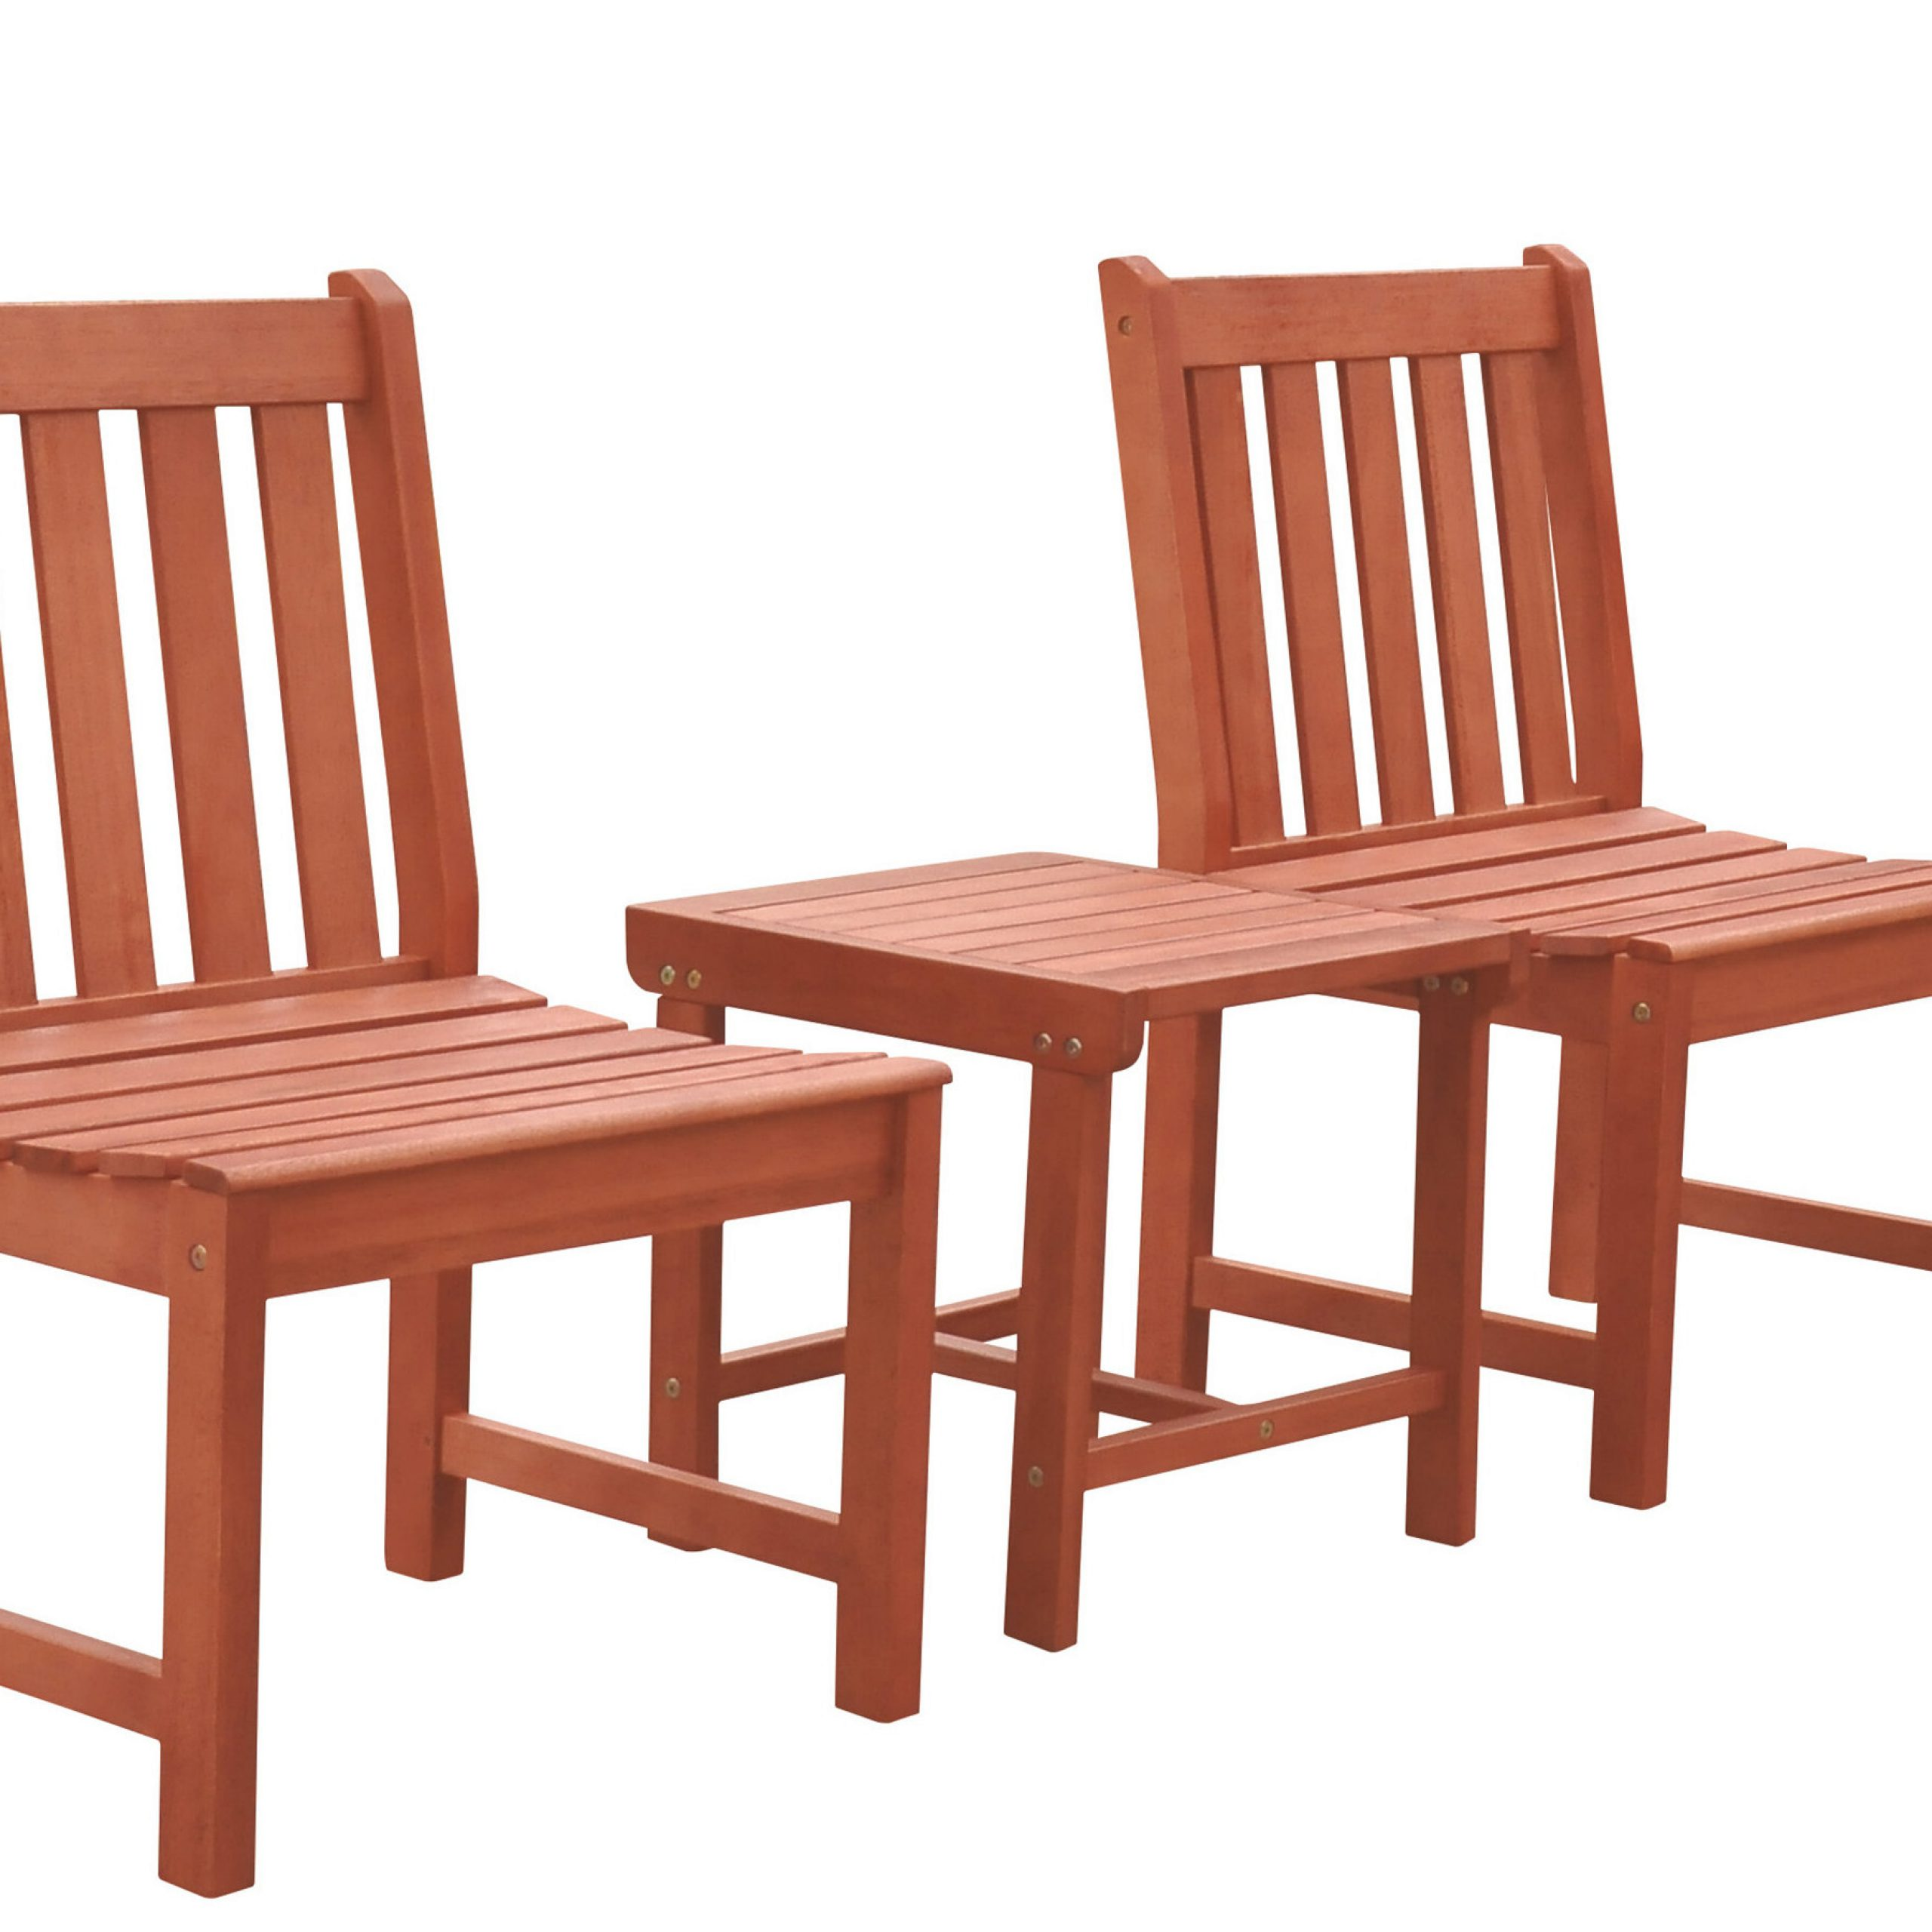 Nick 3 Piece Bistro Set With Regard To Most Current Amabel Patio Diamond Wooden Garden Benches (View 25 of 30)